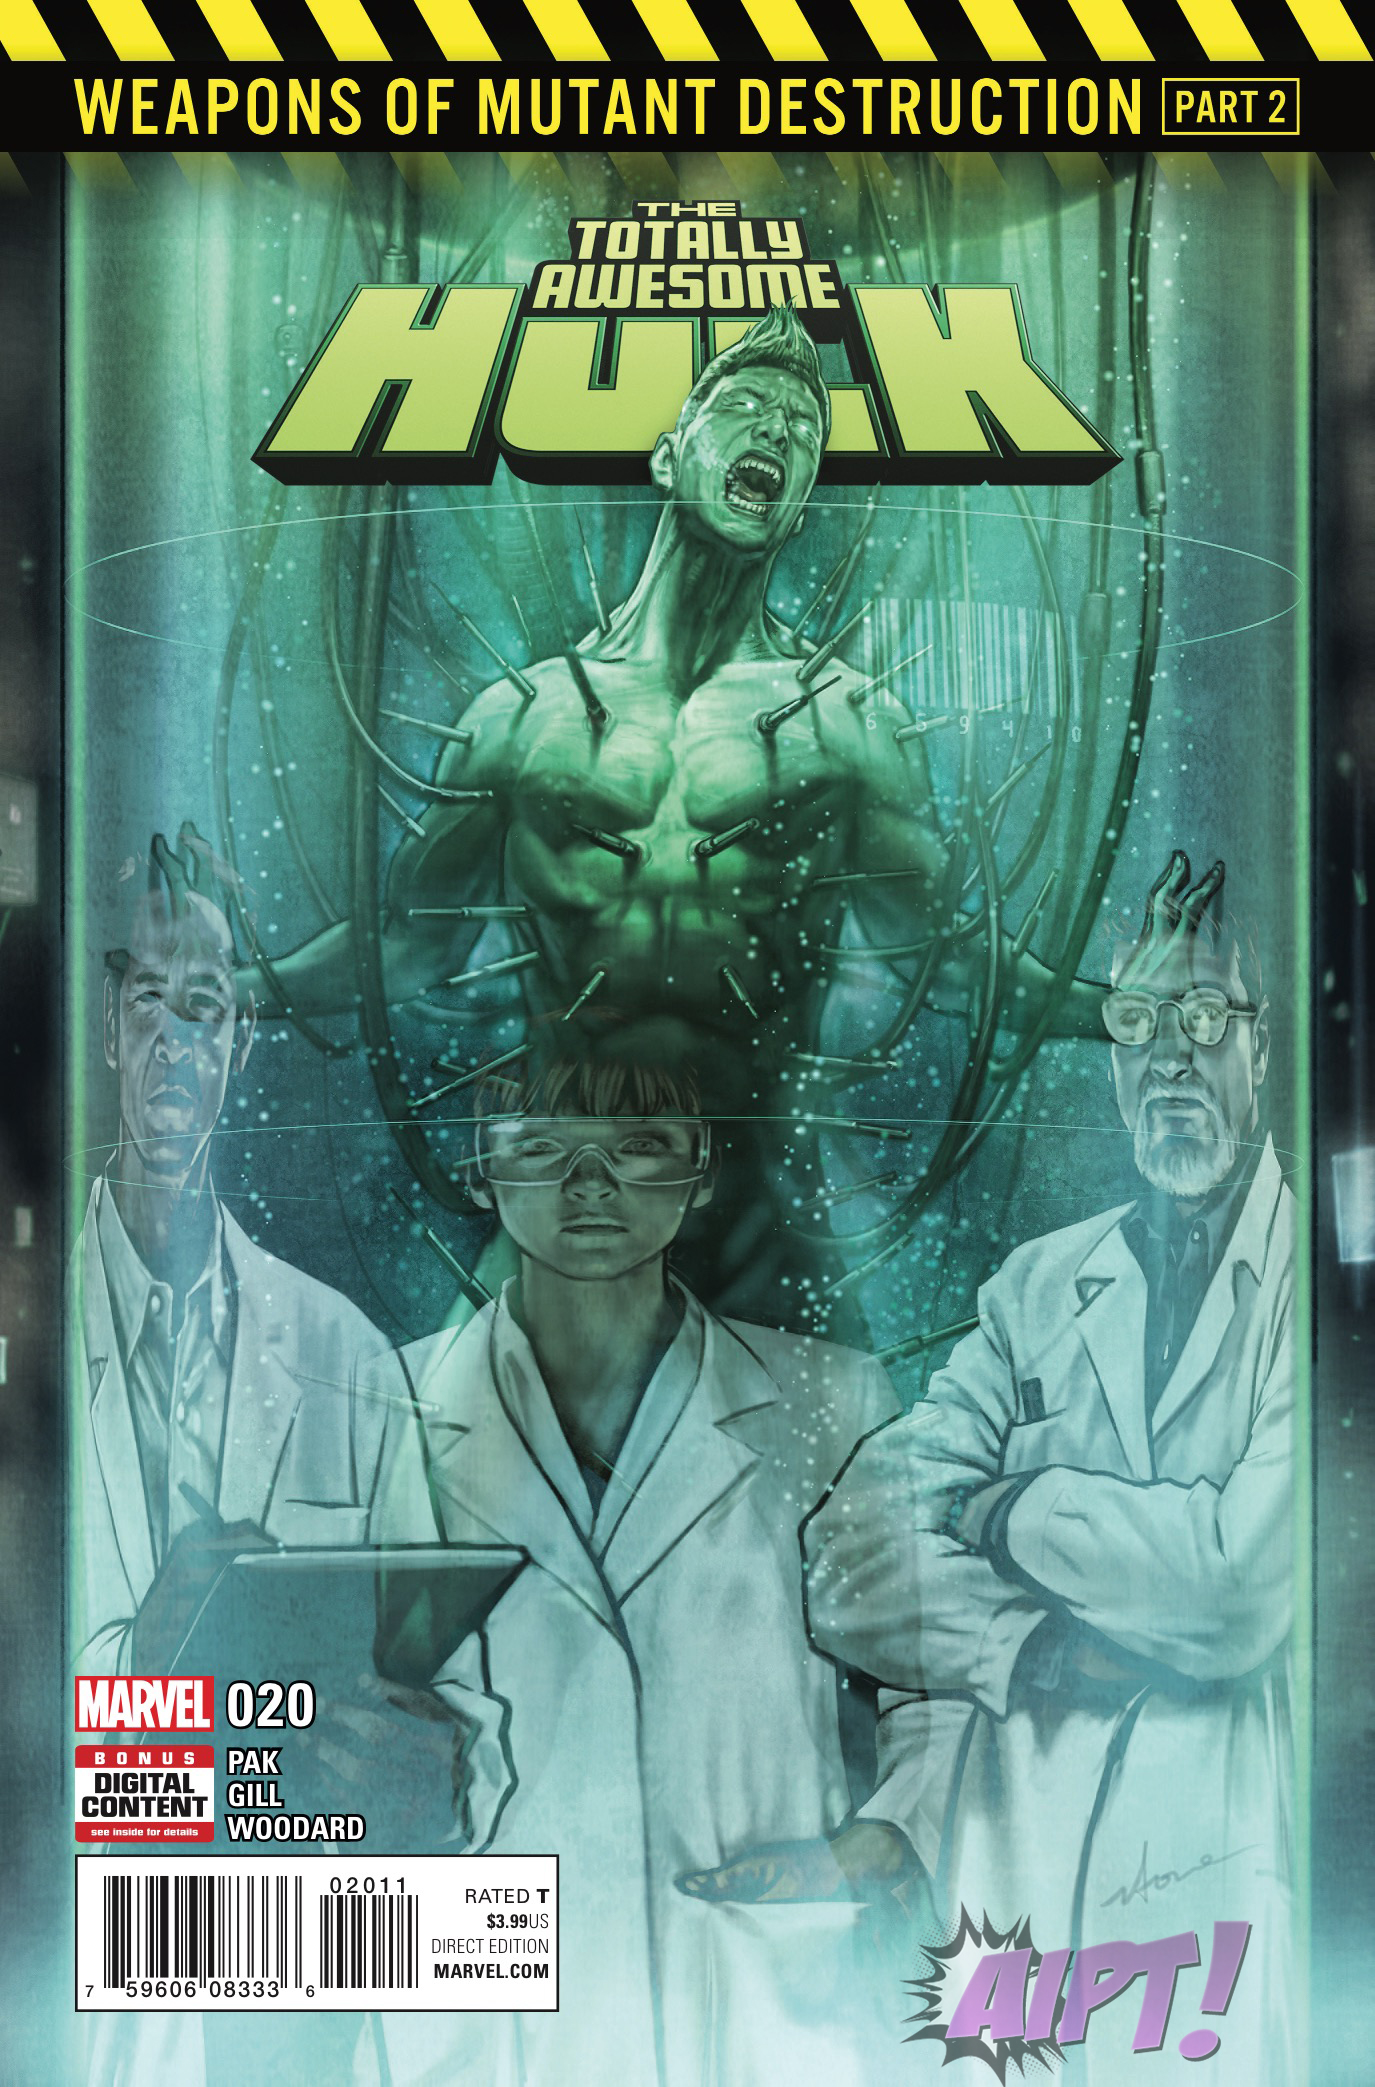 [EXCLUSIVE] Marvel Preview: The Totally Awesome Hulk #20